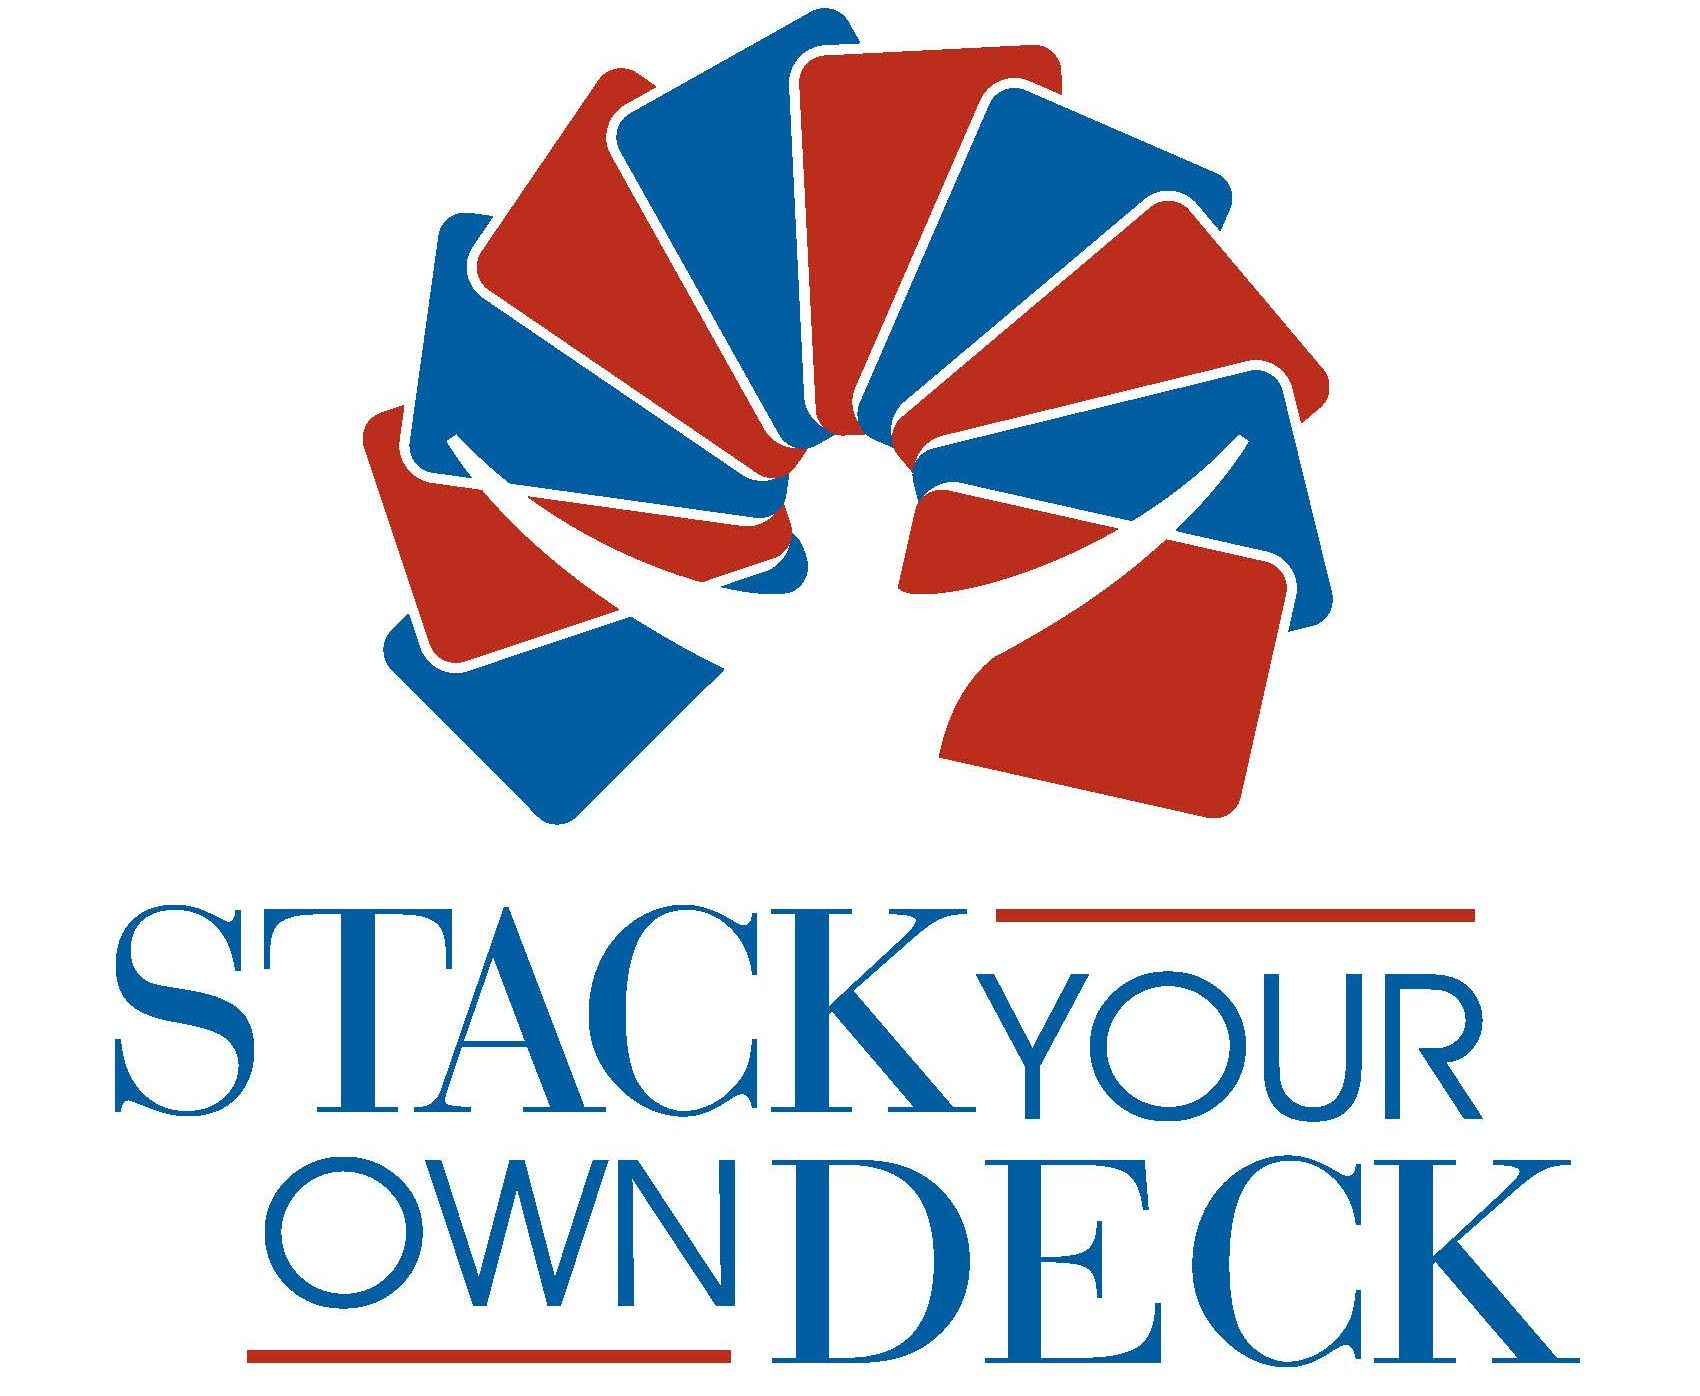 Stack Your Own Deck